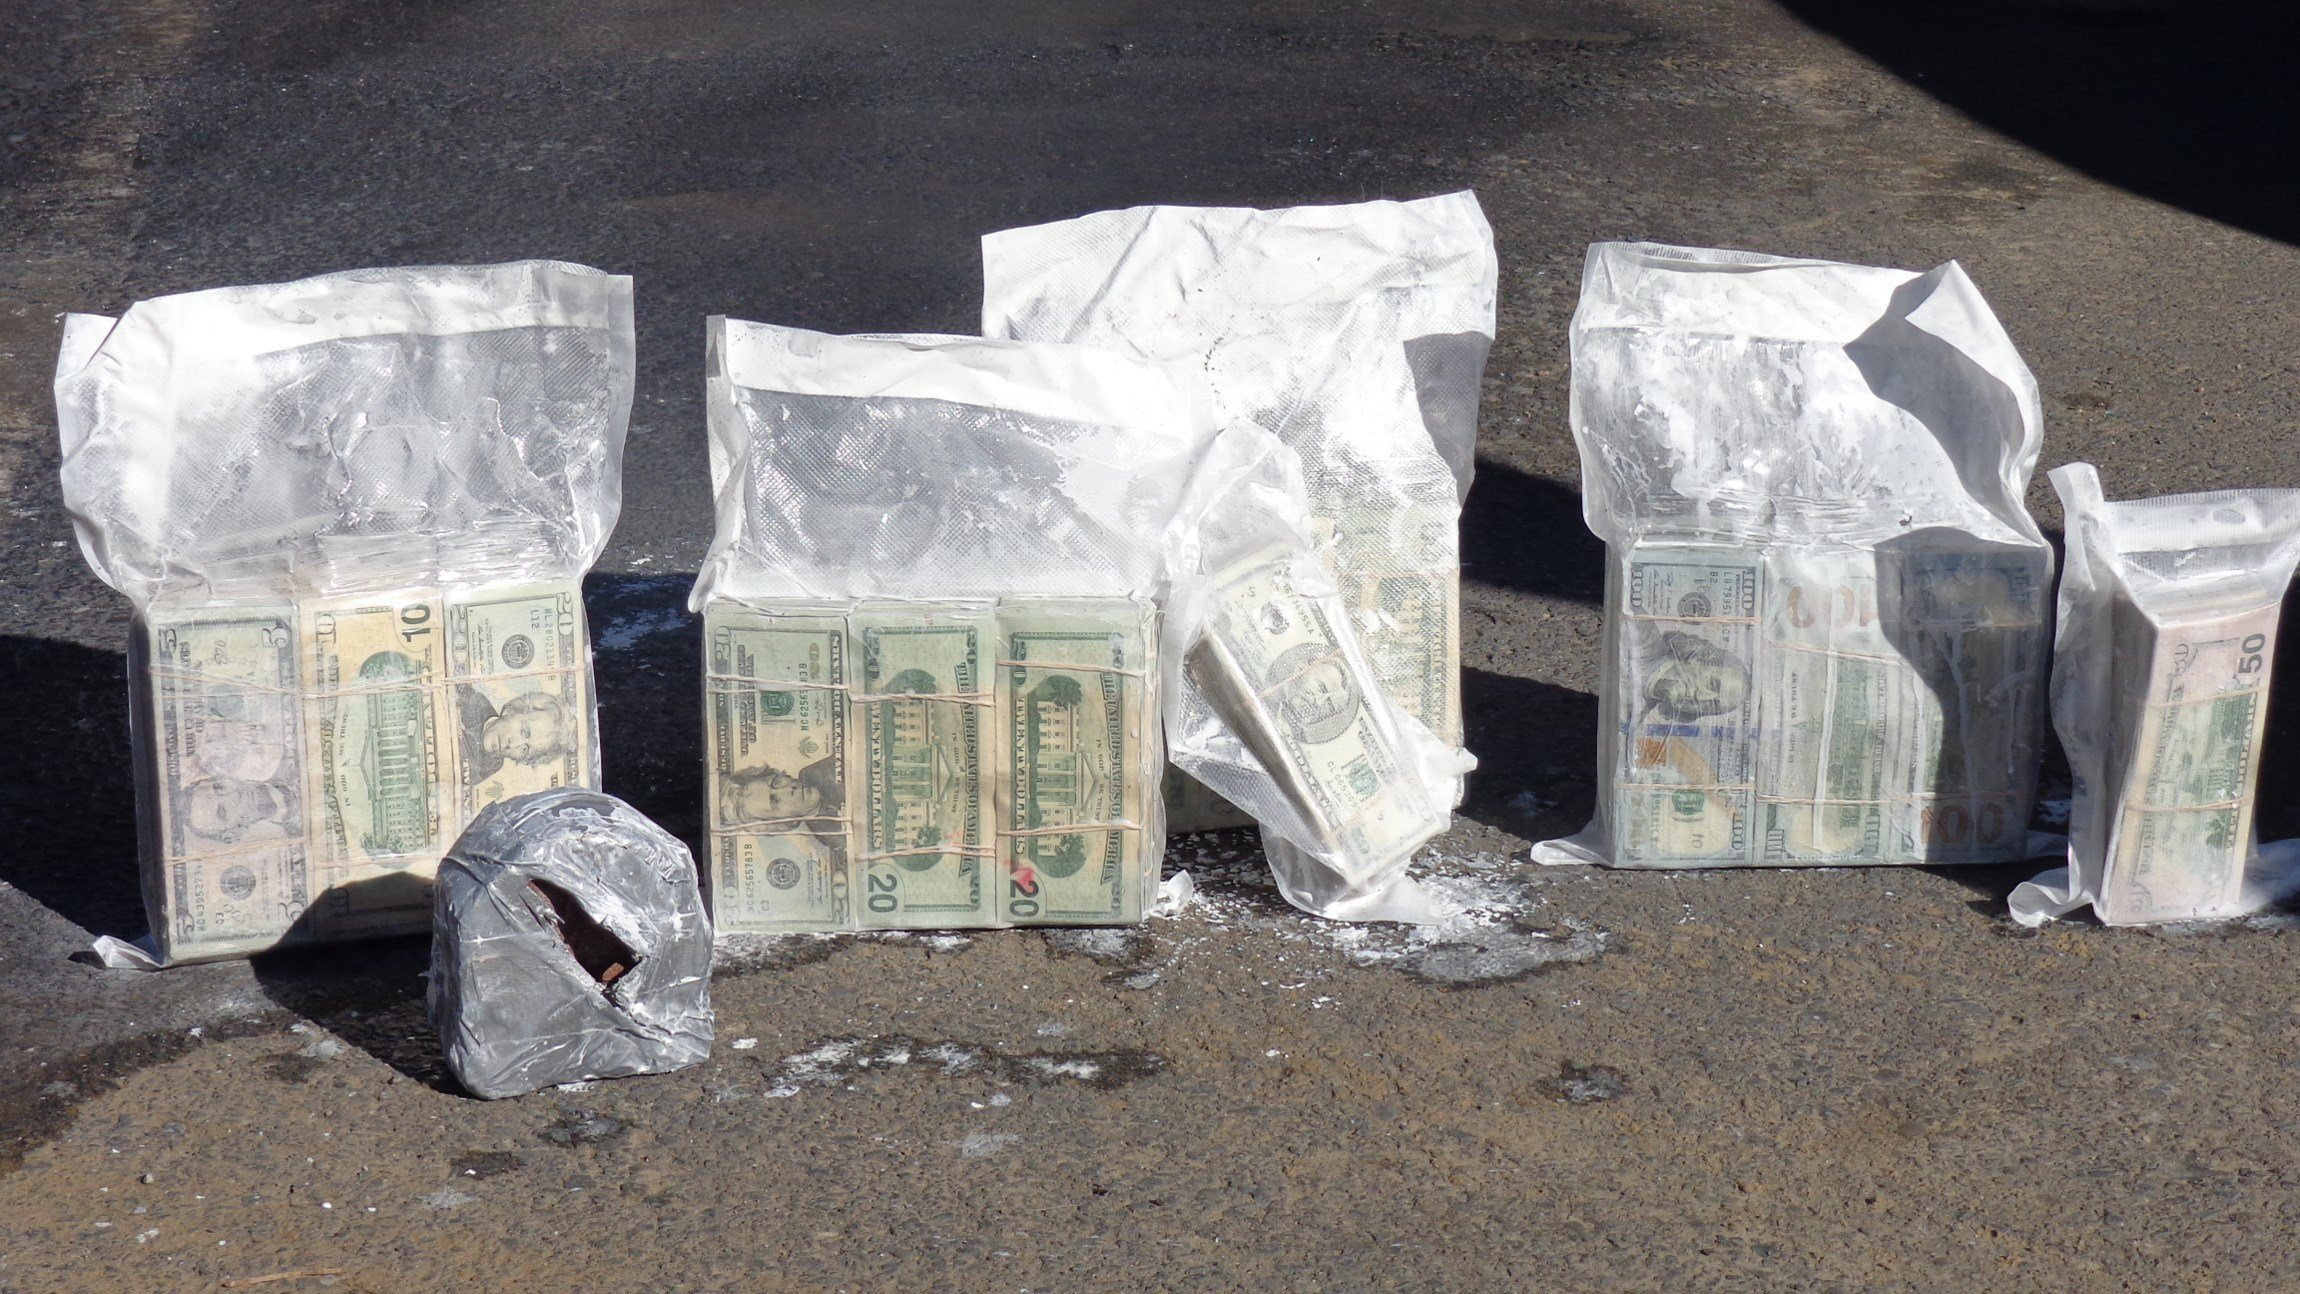 Agents confiscated $290,000 from the five-gallon paint can. (Photo courtesy of U.S. Customs and Border Protection)